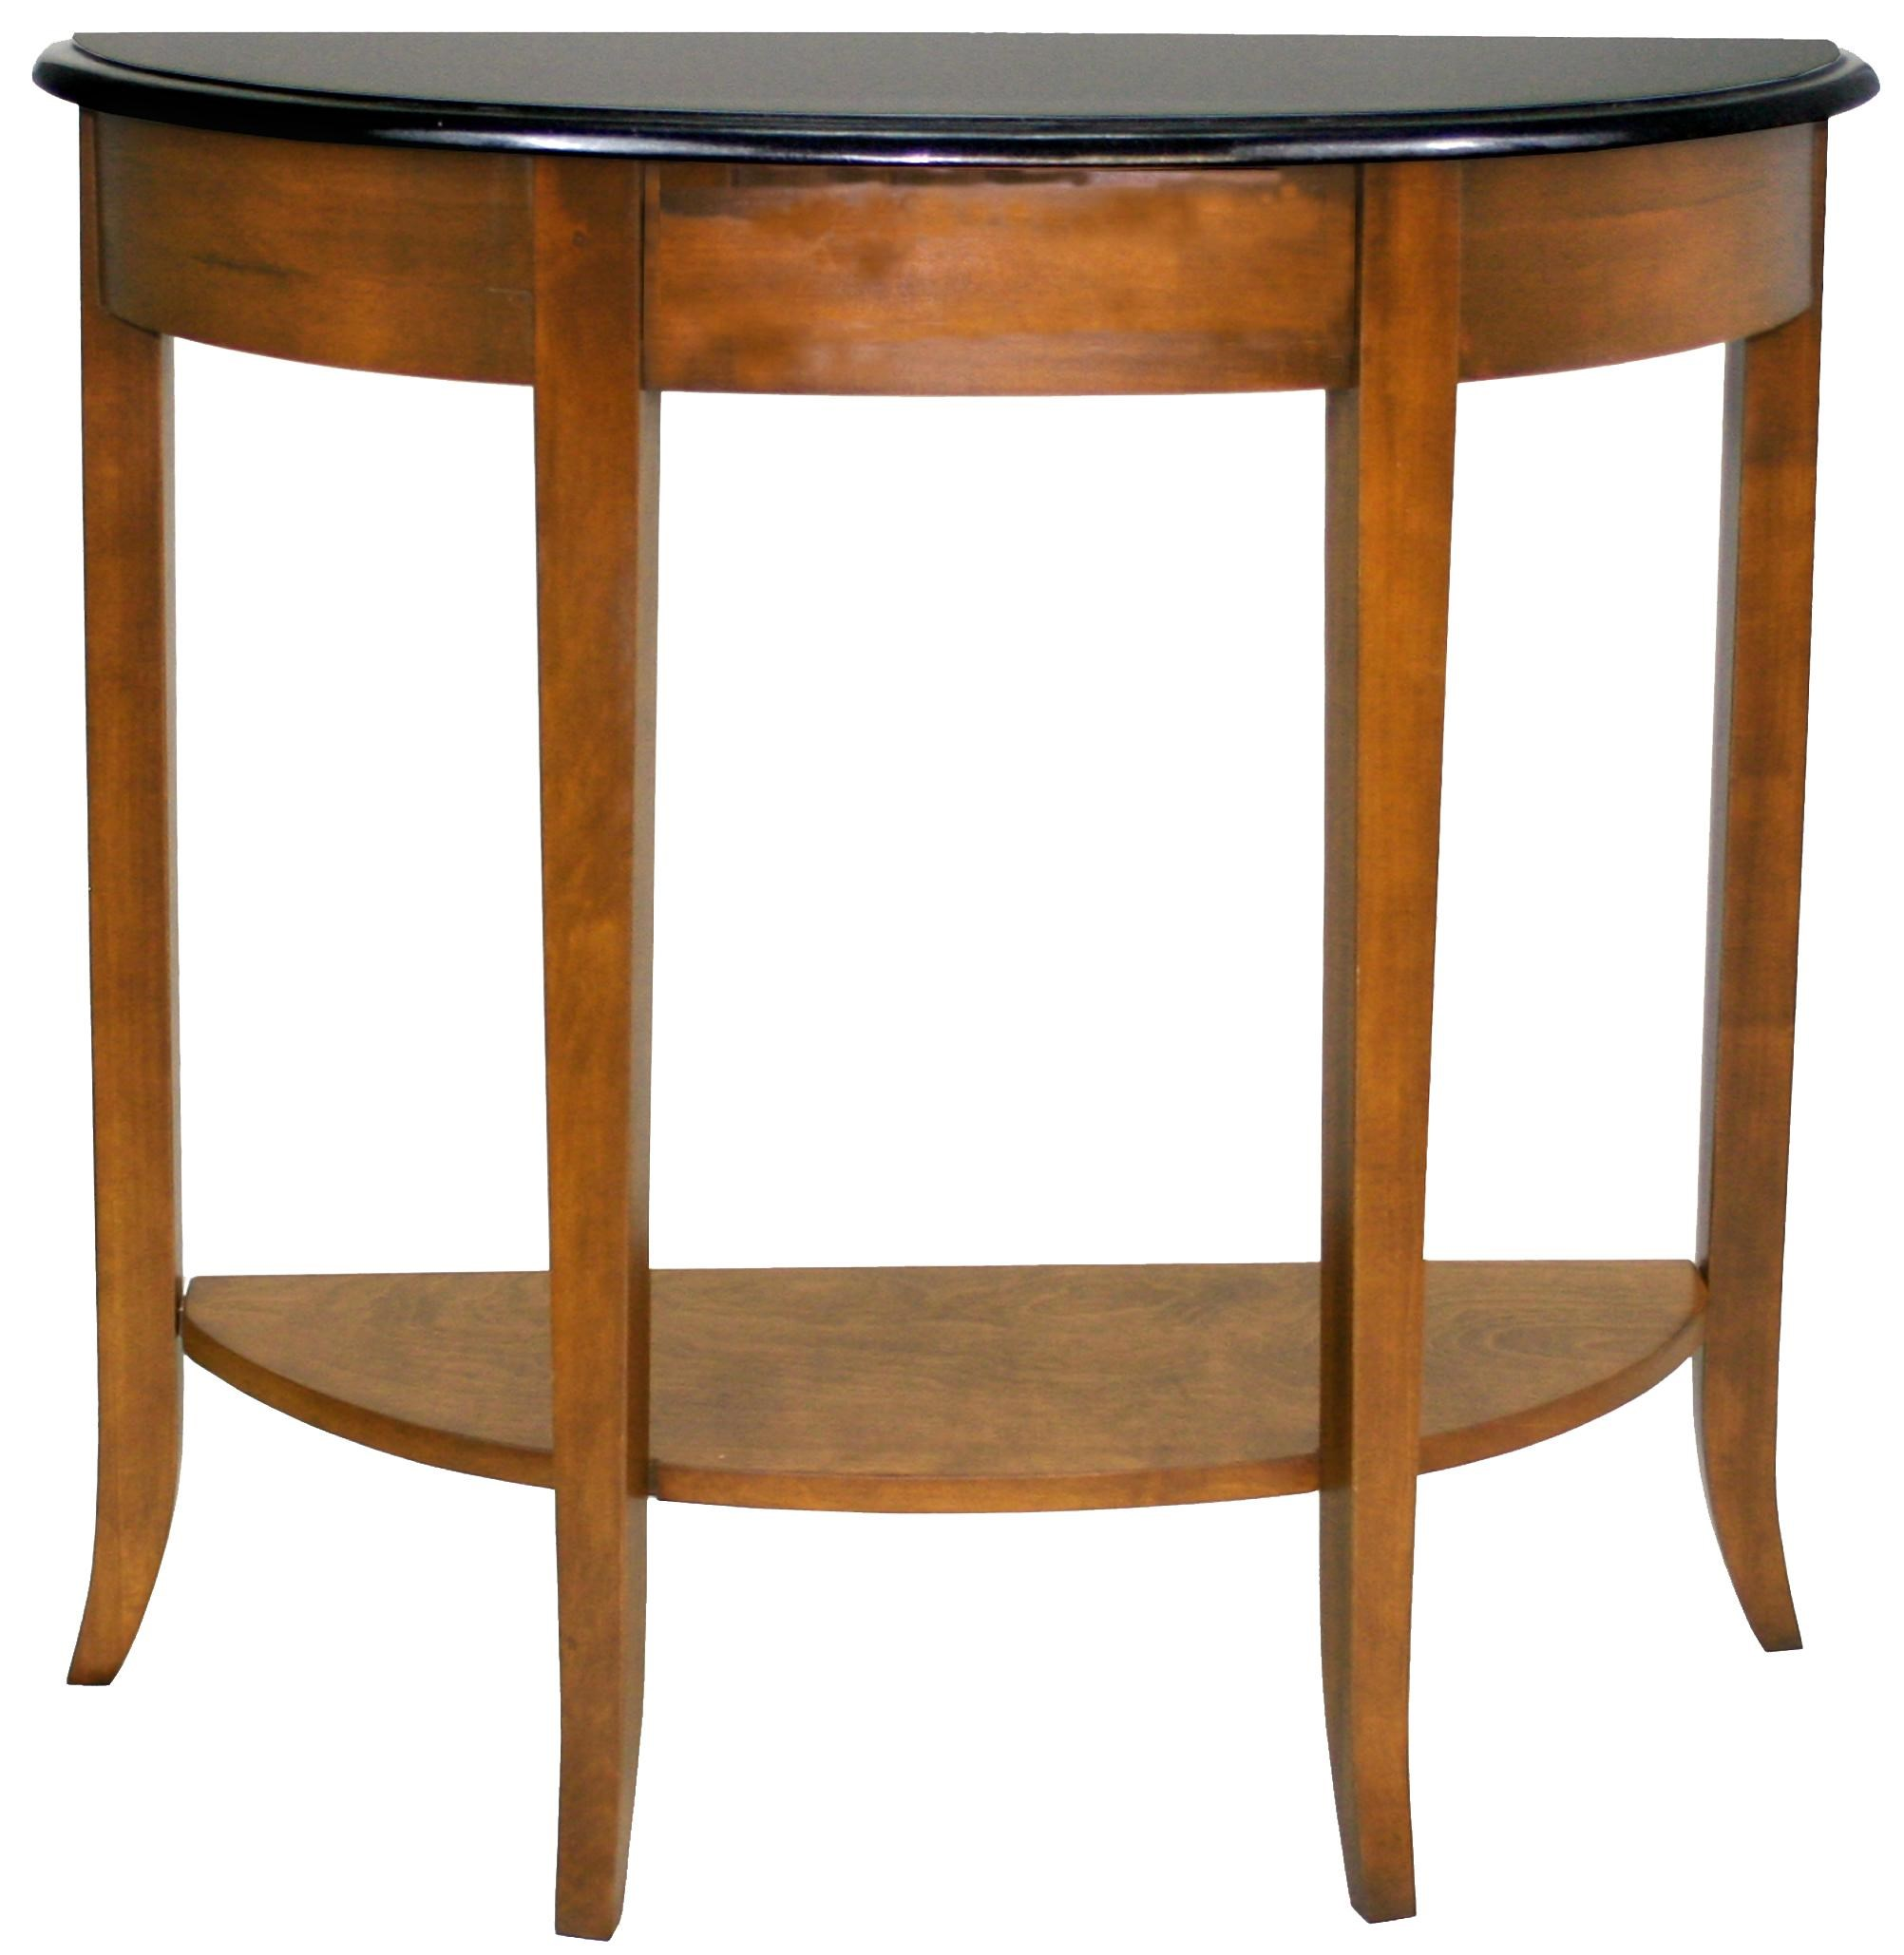 Favorite Finds Casual Demilune Granite Top Console With Shelf By Leick  Furniture. Favorite Finds Collection